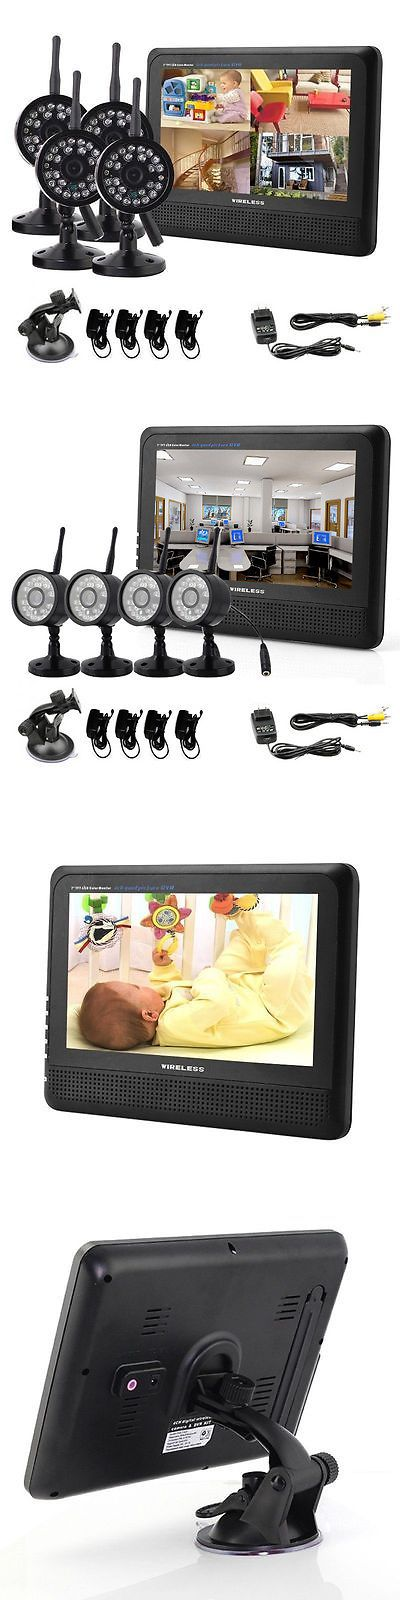 Security Cameras: Wireless Security Spy Camera System 4Ch Ir Night Vision Indoor Dvr Cctv 2.4Ghz BUY IT NOW ONLY: $105.5